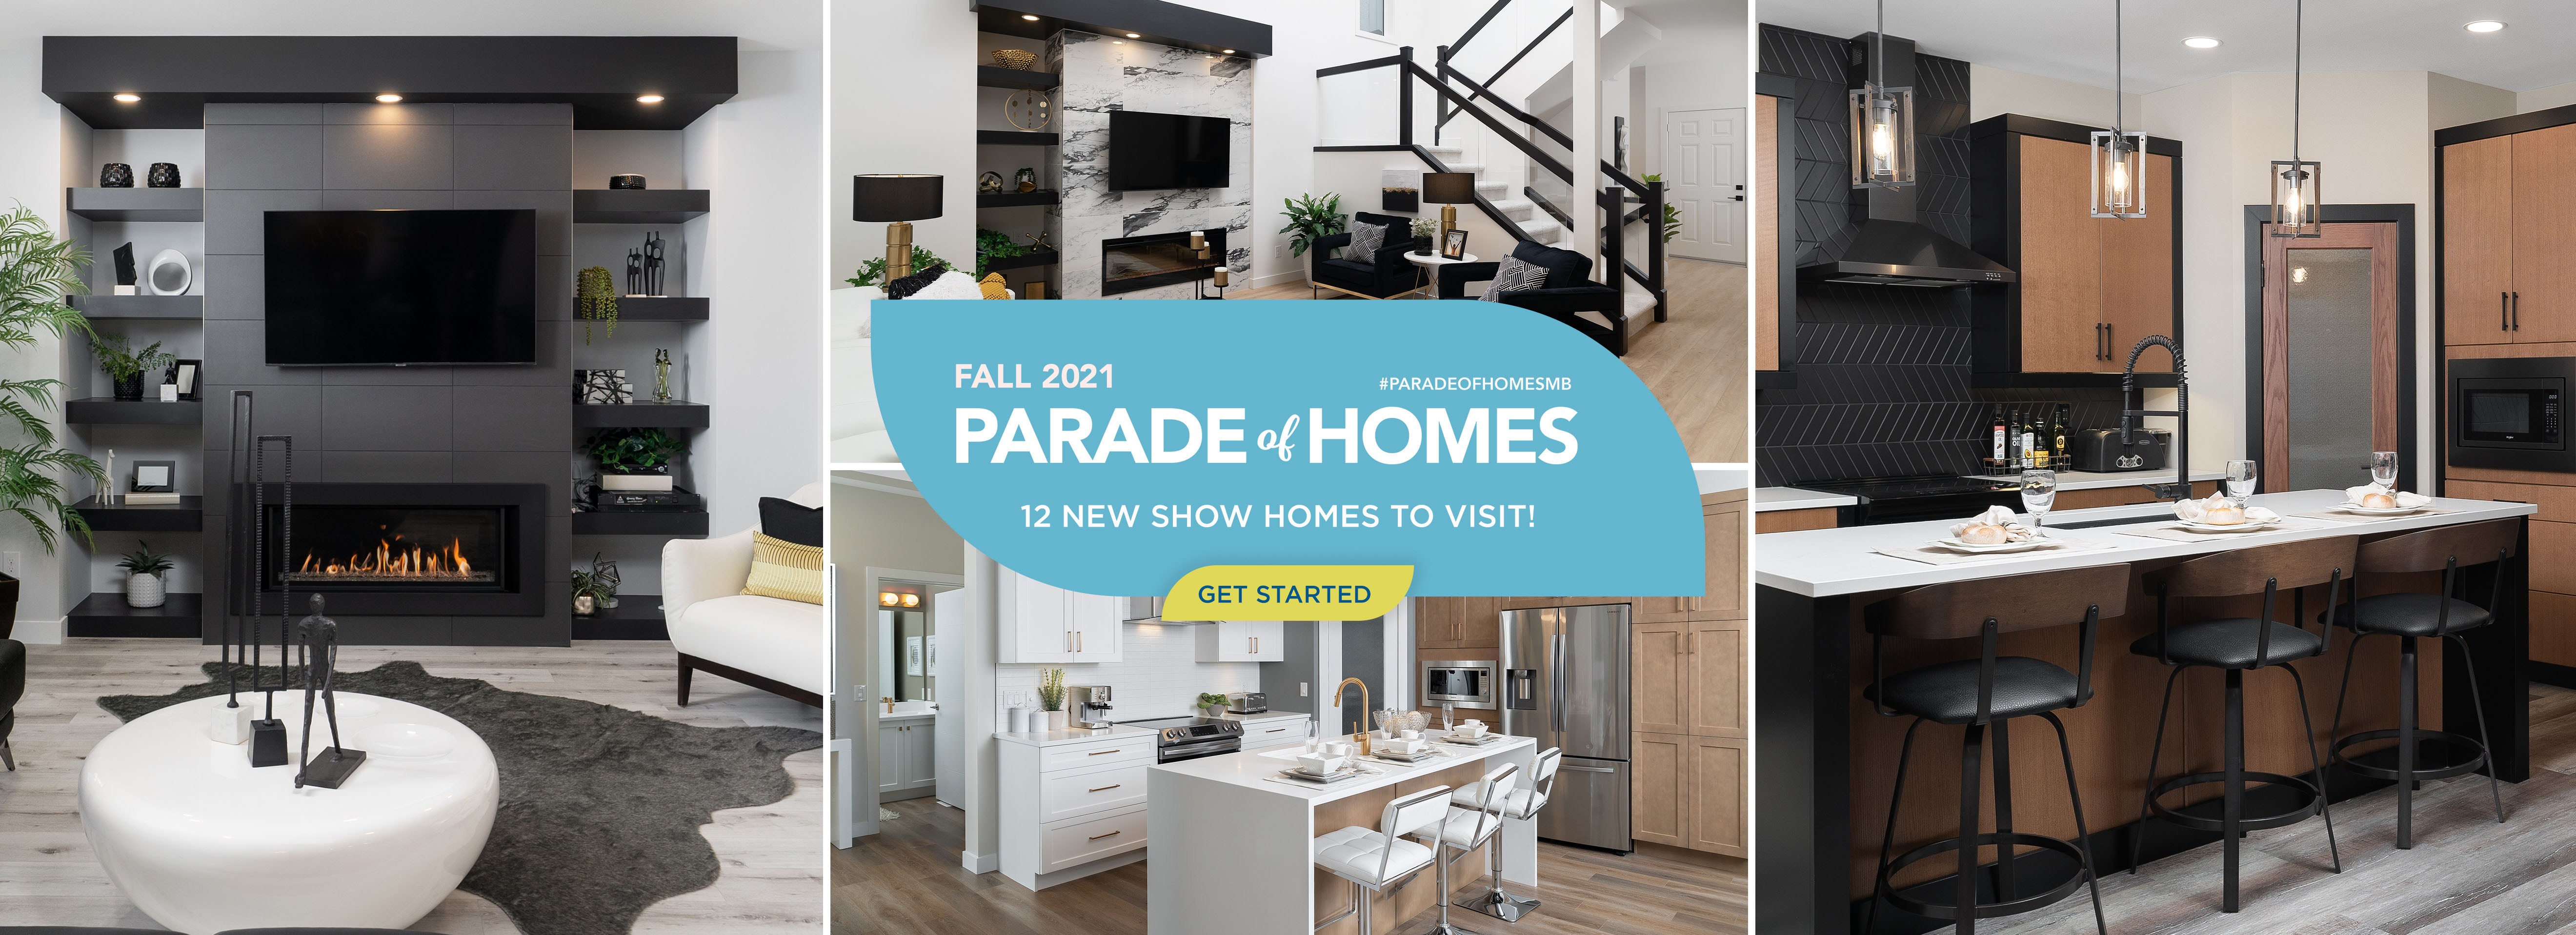 parade-of-homes-banner